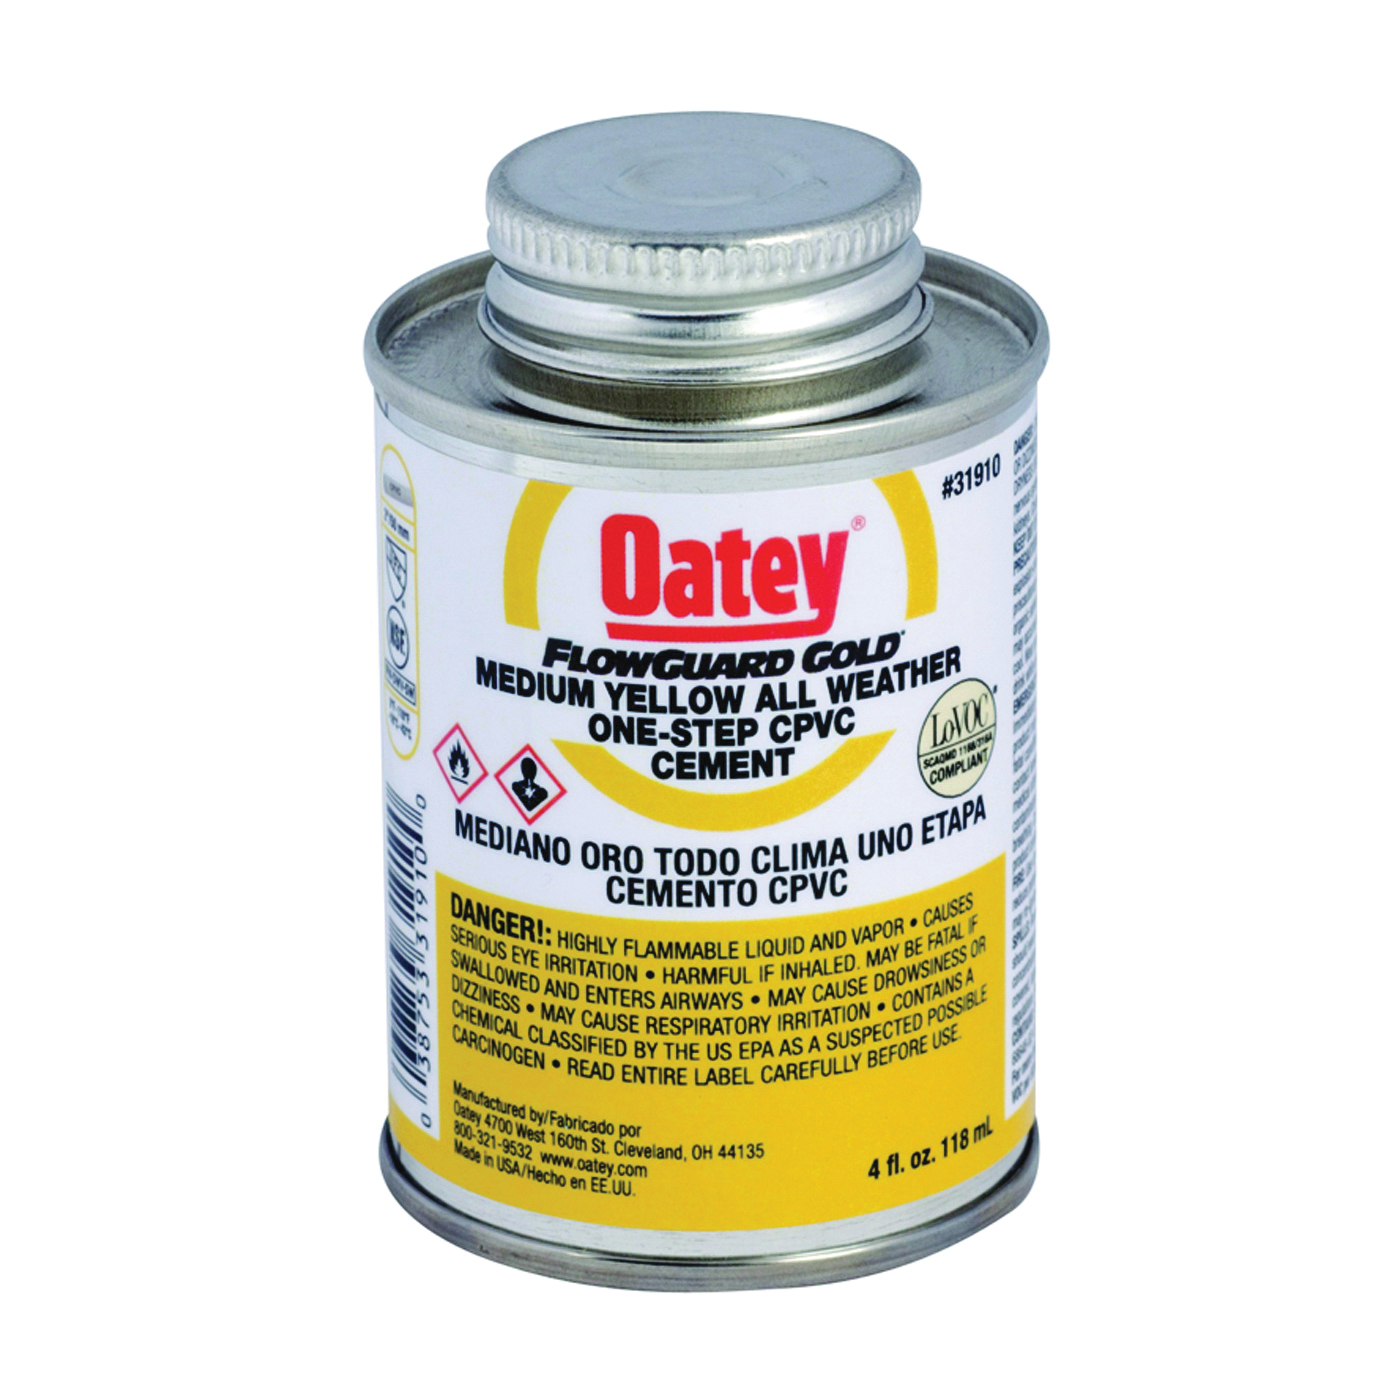 Picture of Oatey 31910 Solvent Cement, 4 oz, Can, Liquid, Yellow